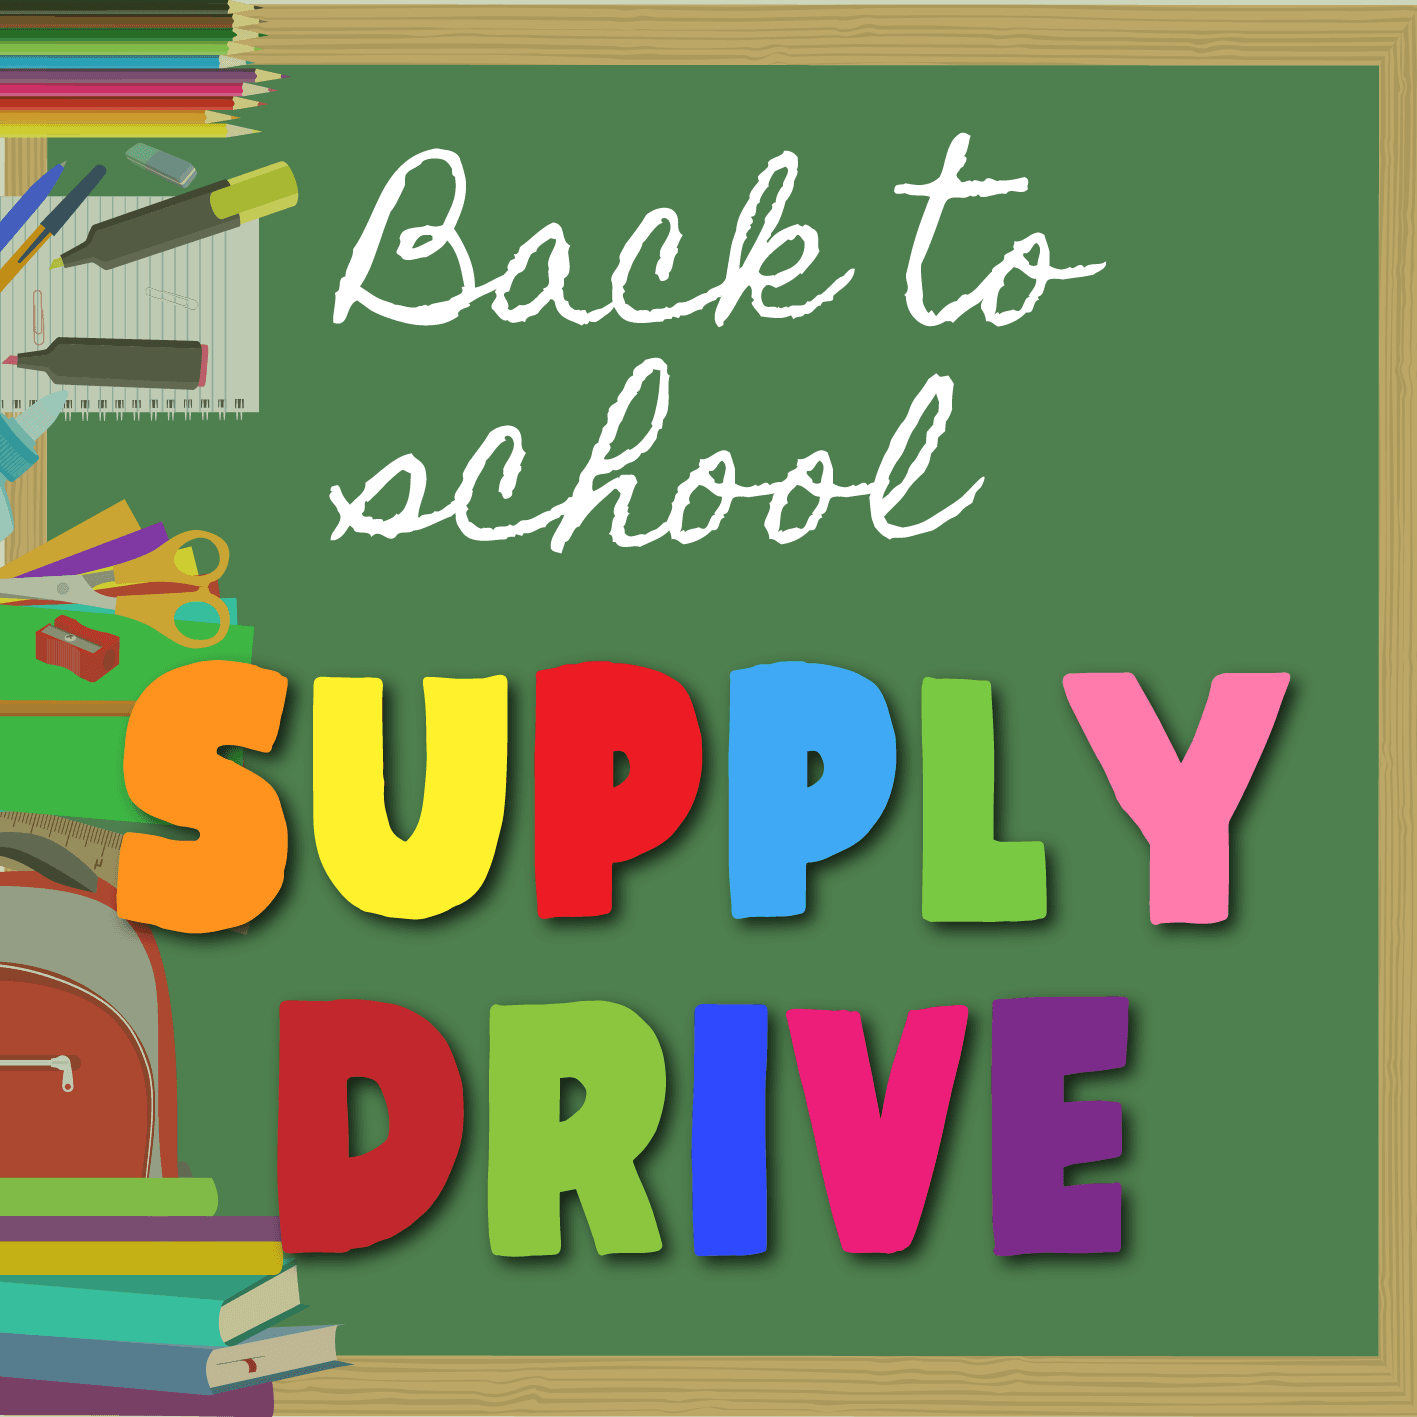 2019 School Supply Drive, August 14 through September 20. Link to full details.